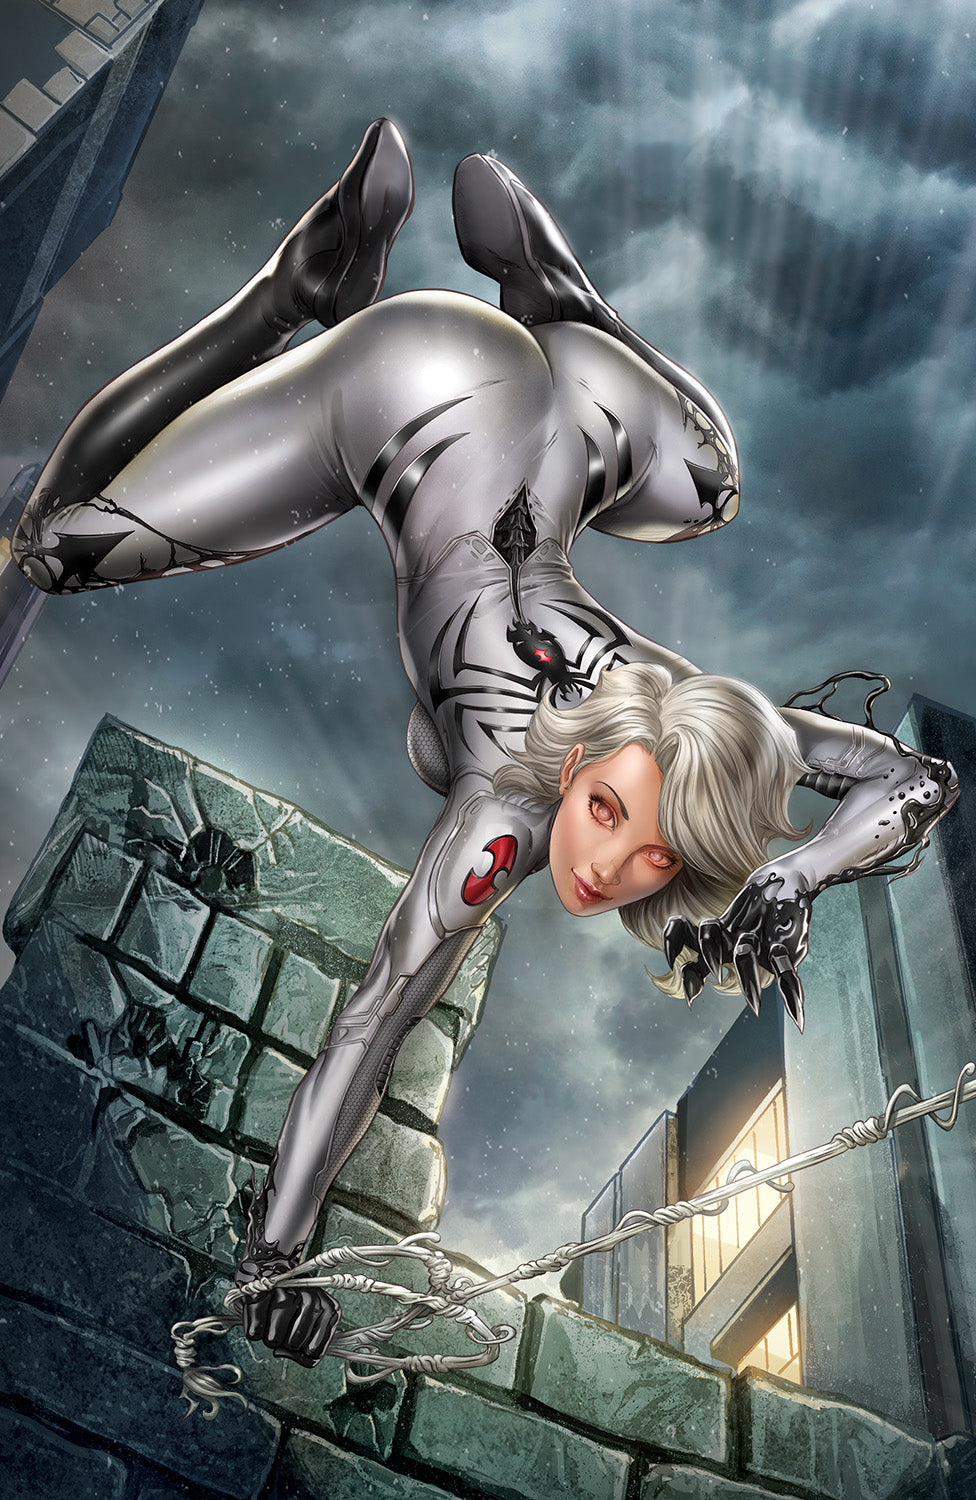 WW04U - White Widow #4 - METAL - Vantage Unmasked